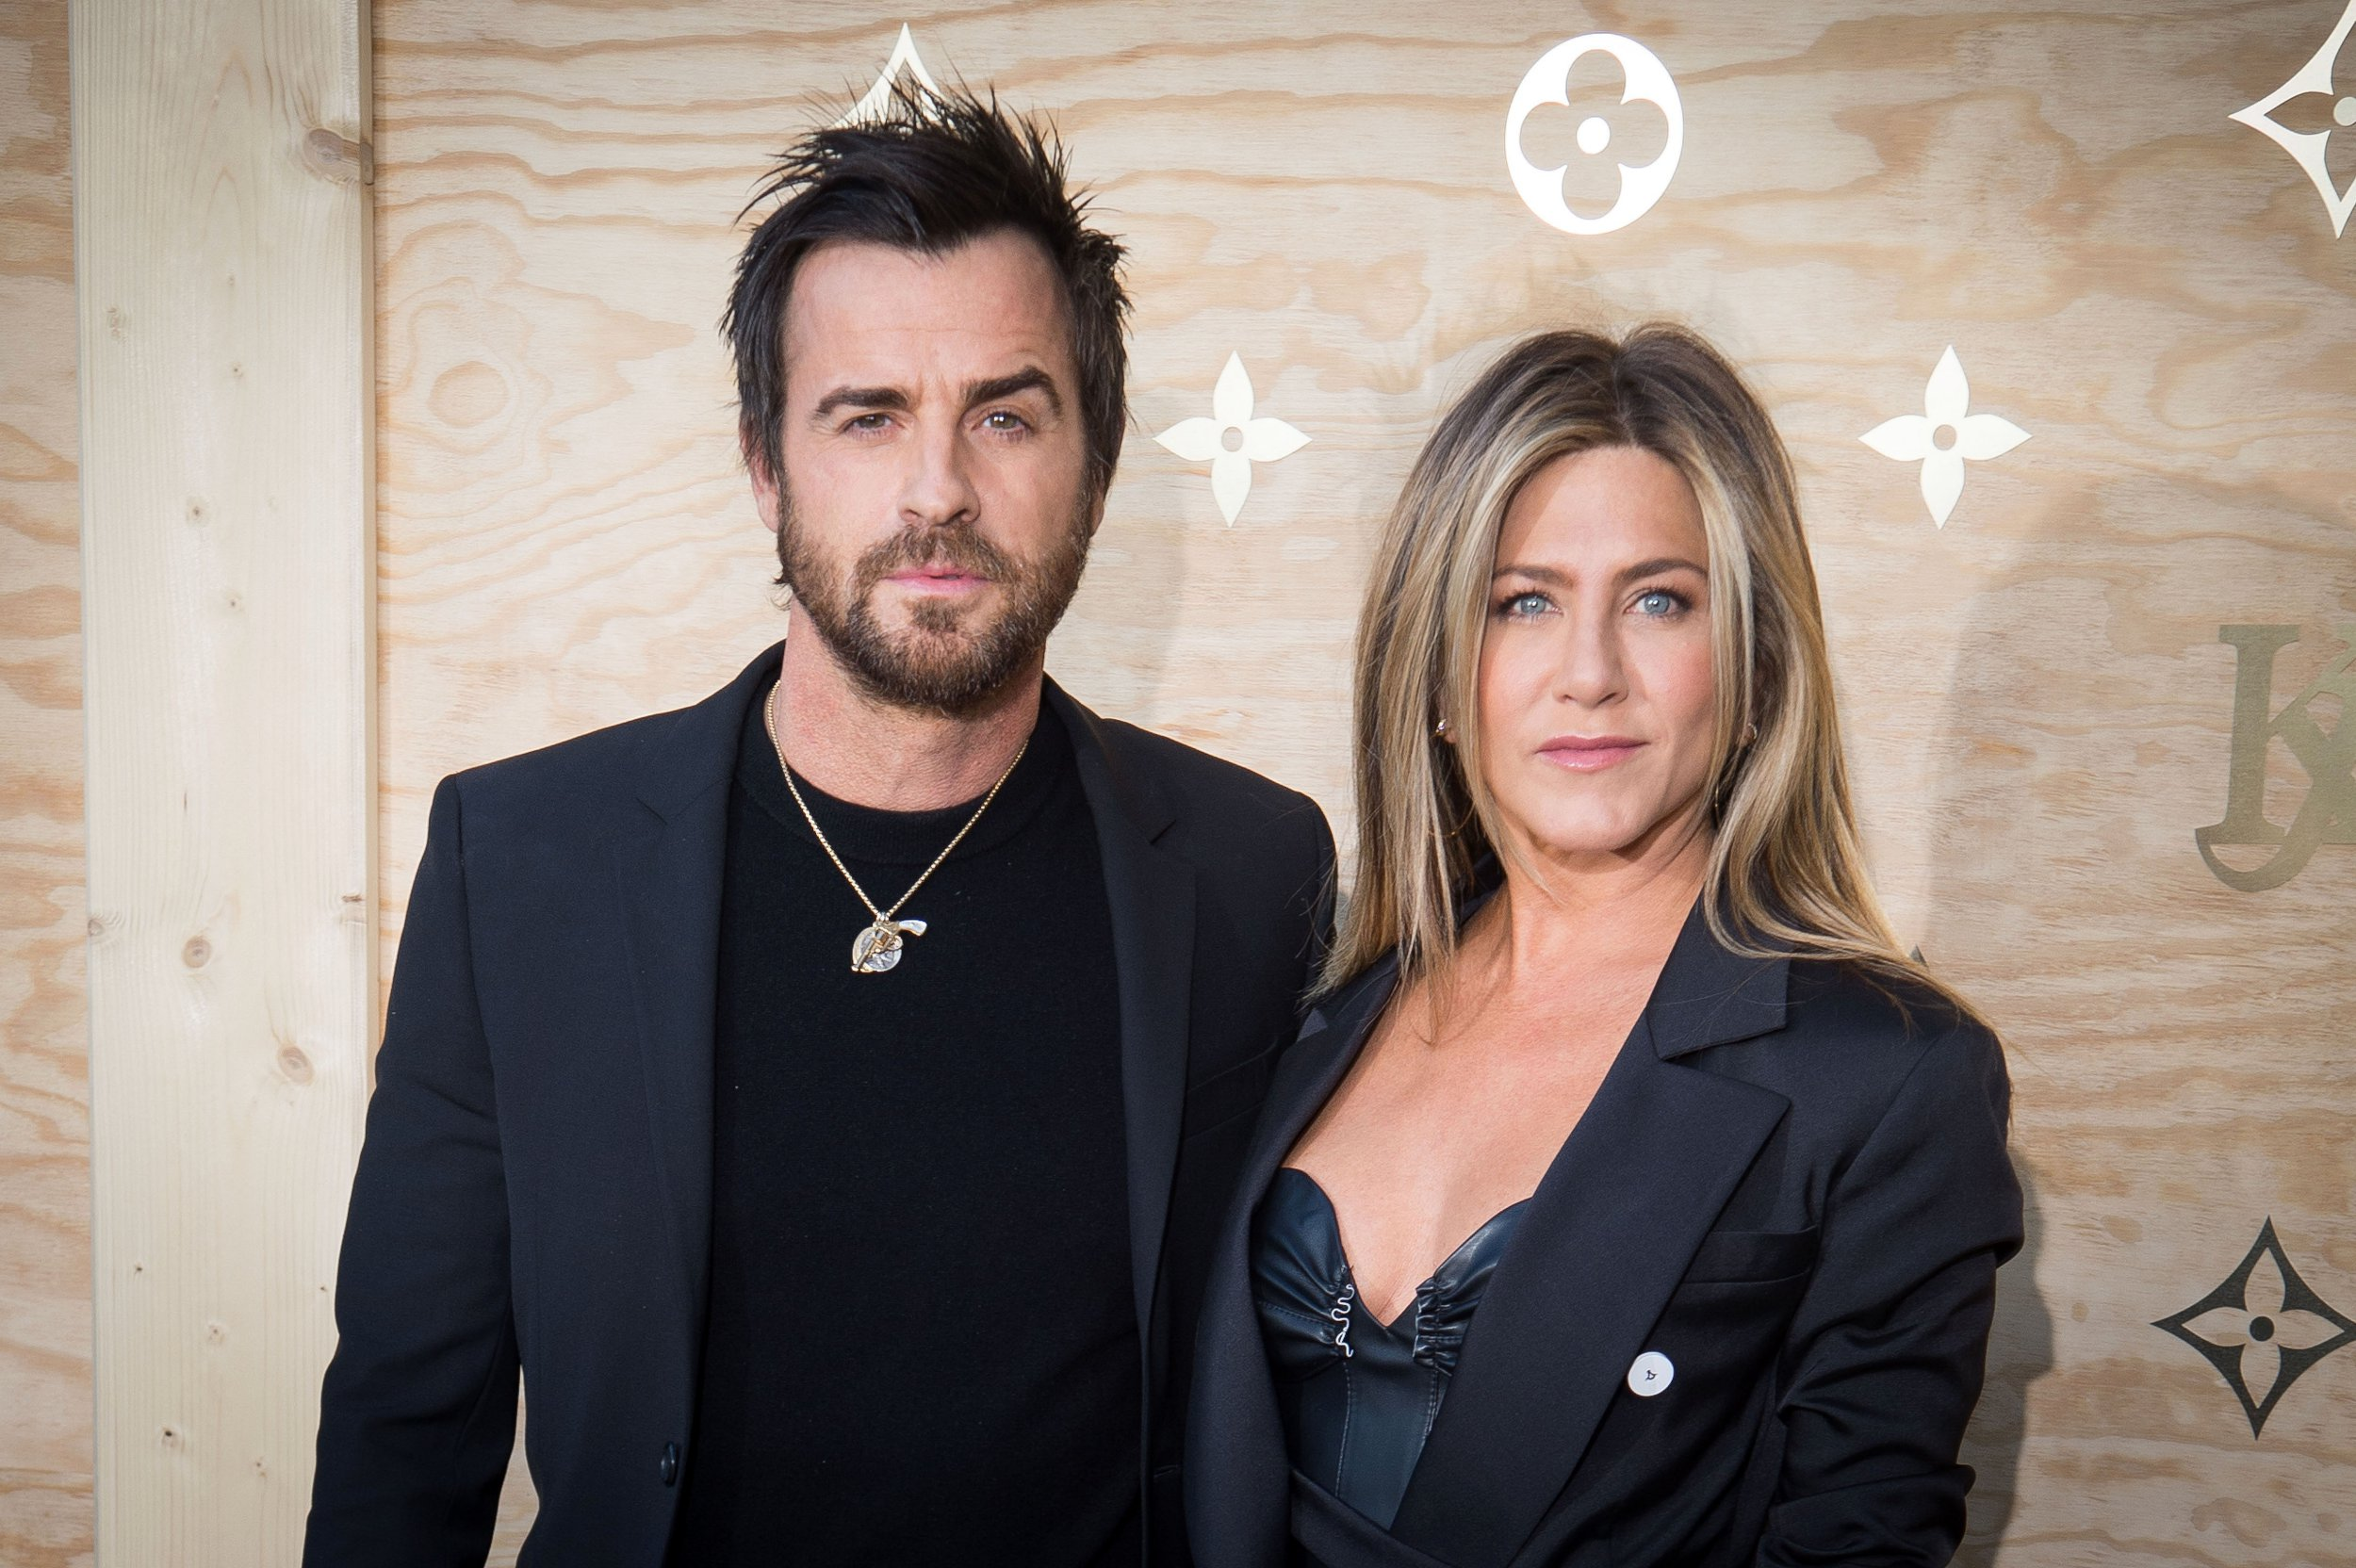 Is Jennifer Aniston ready to mingle as Justin Theroux starts 'dating again'?